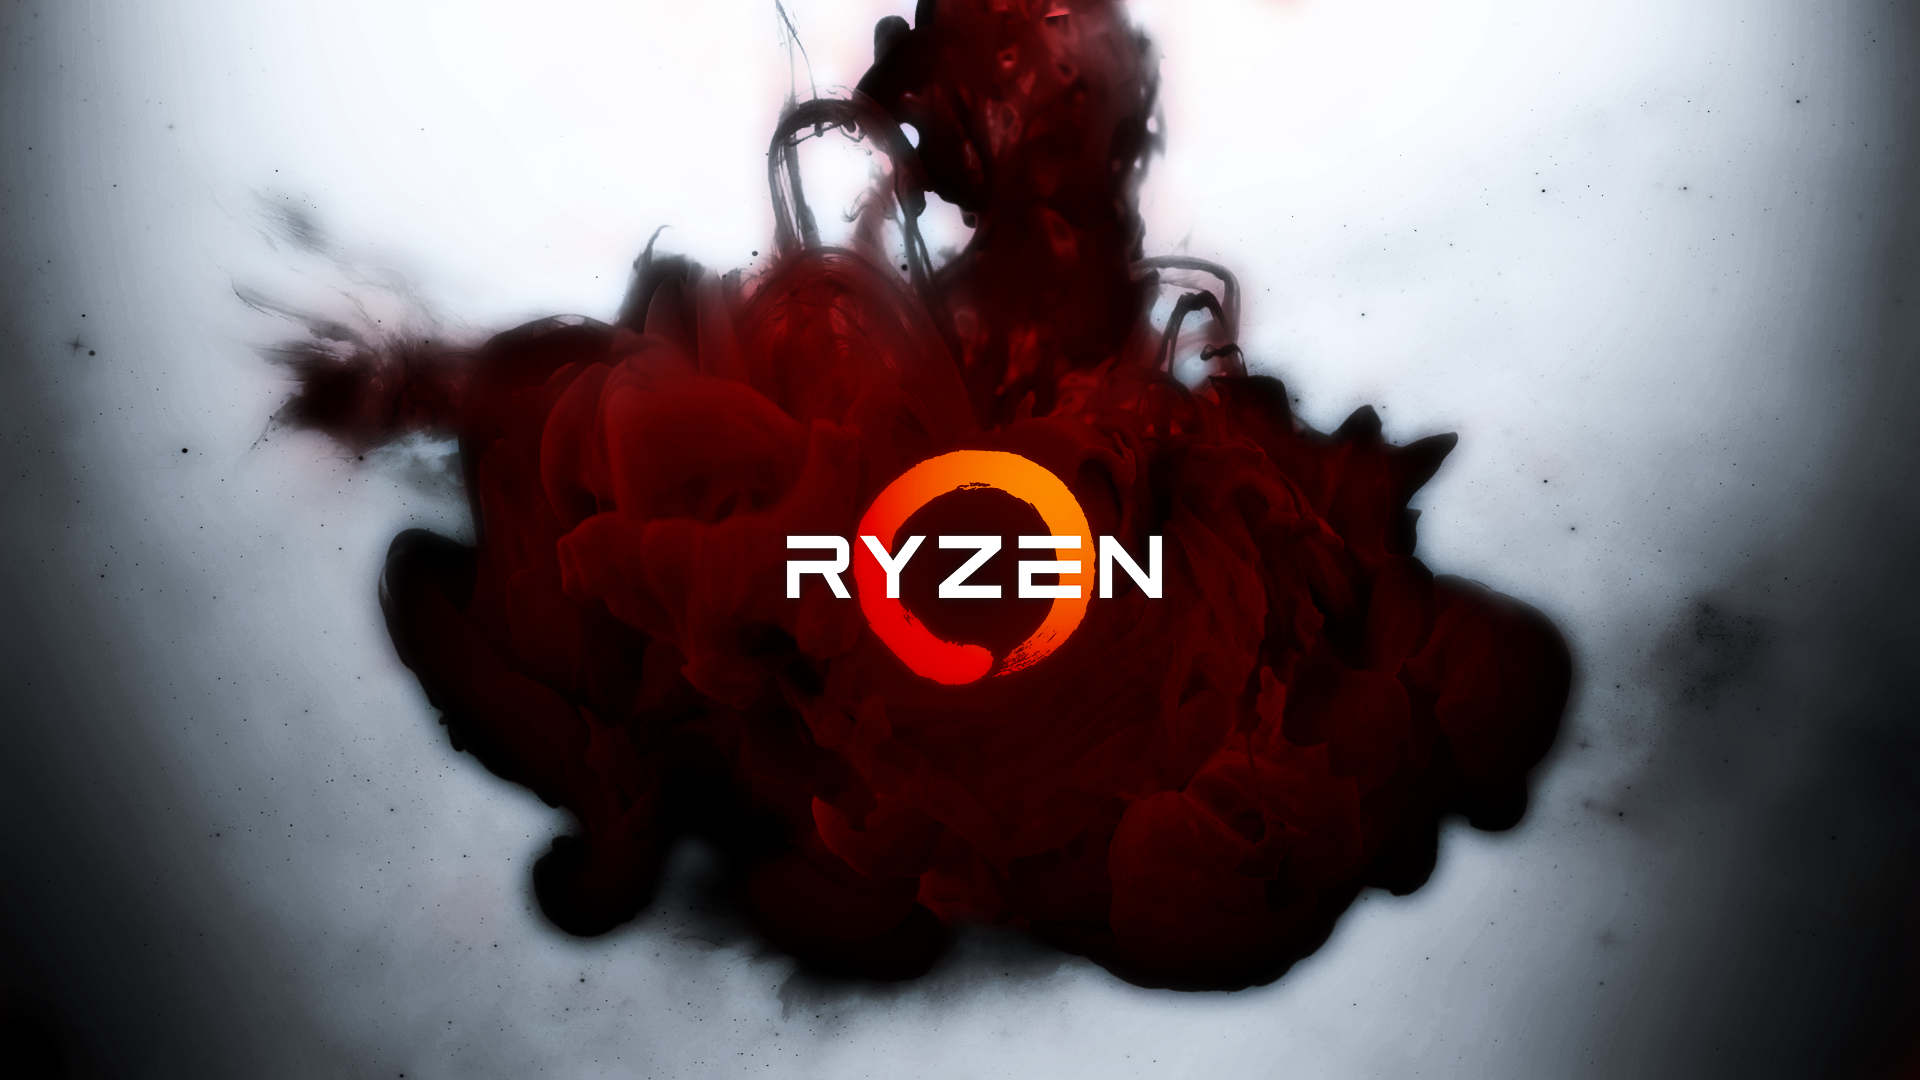 amd_ryzen_wallpaper_by_xenof3-db001aq.png